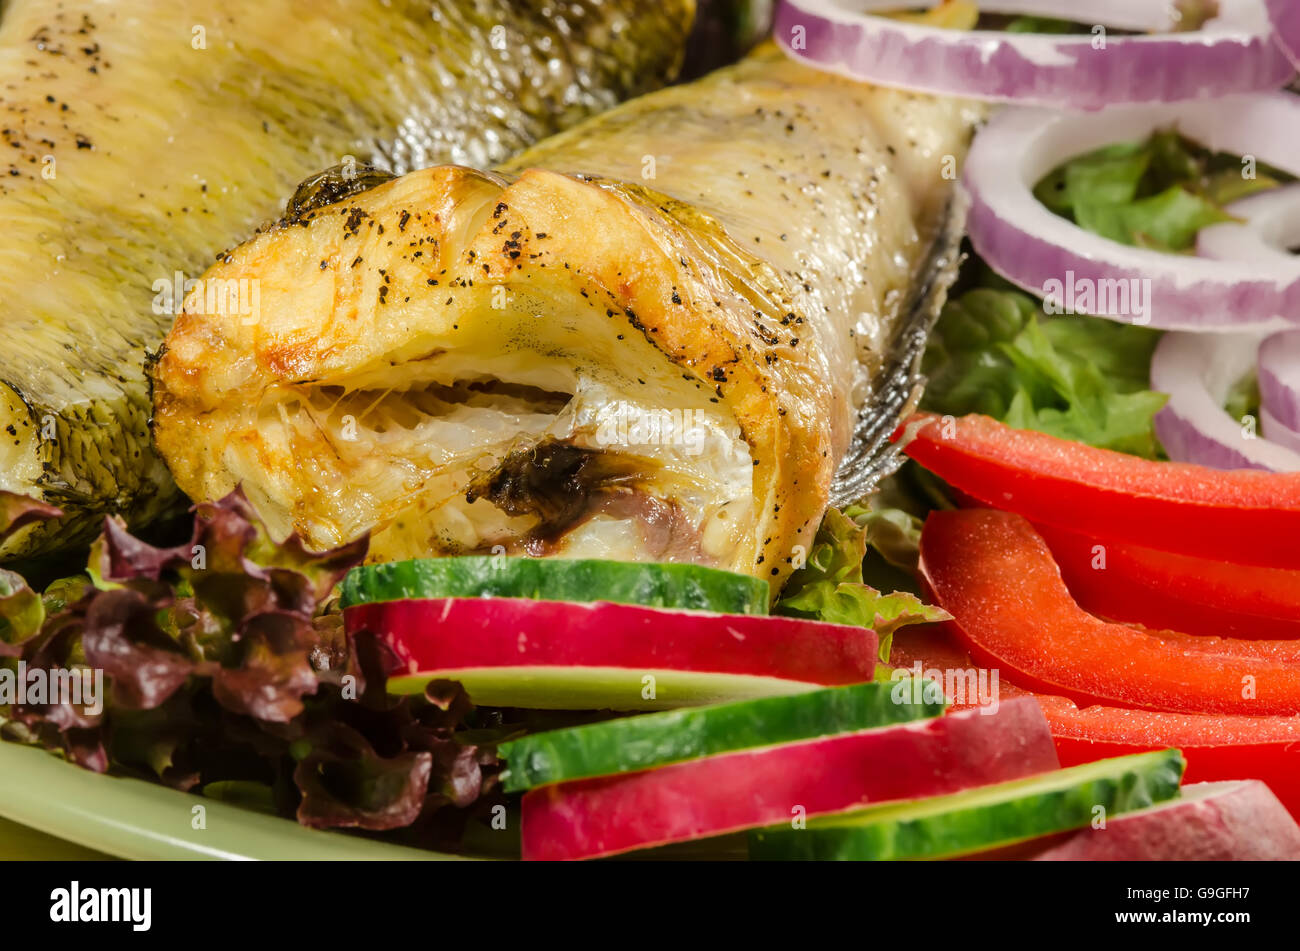 Baked shad with vegatables at dish close up - Stock Image